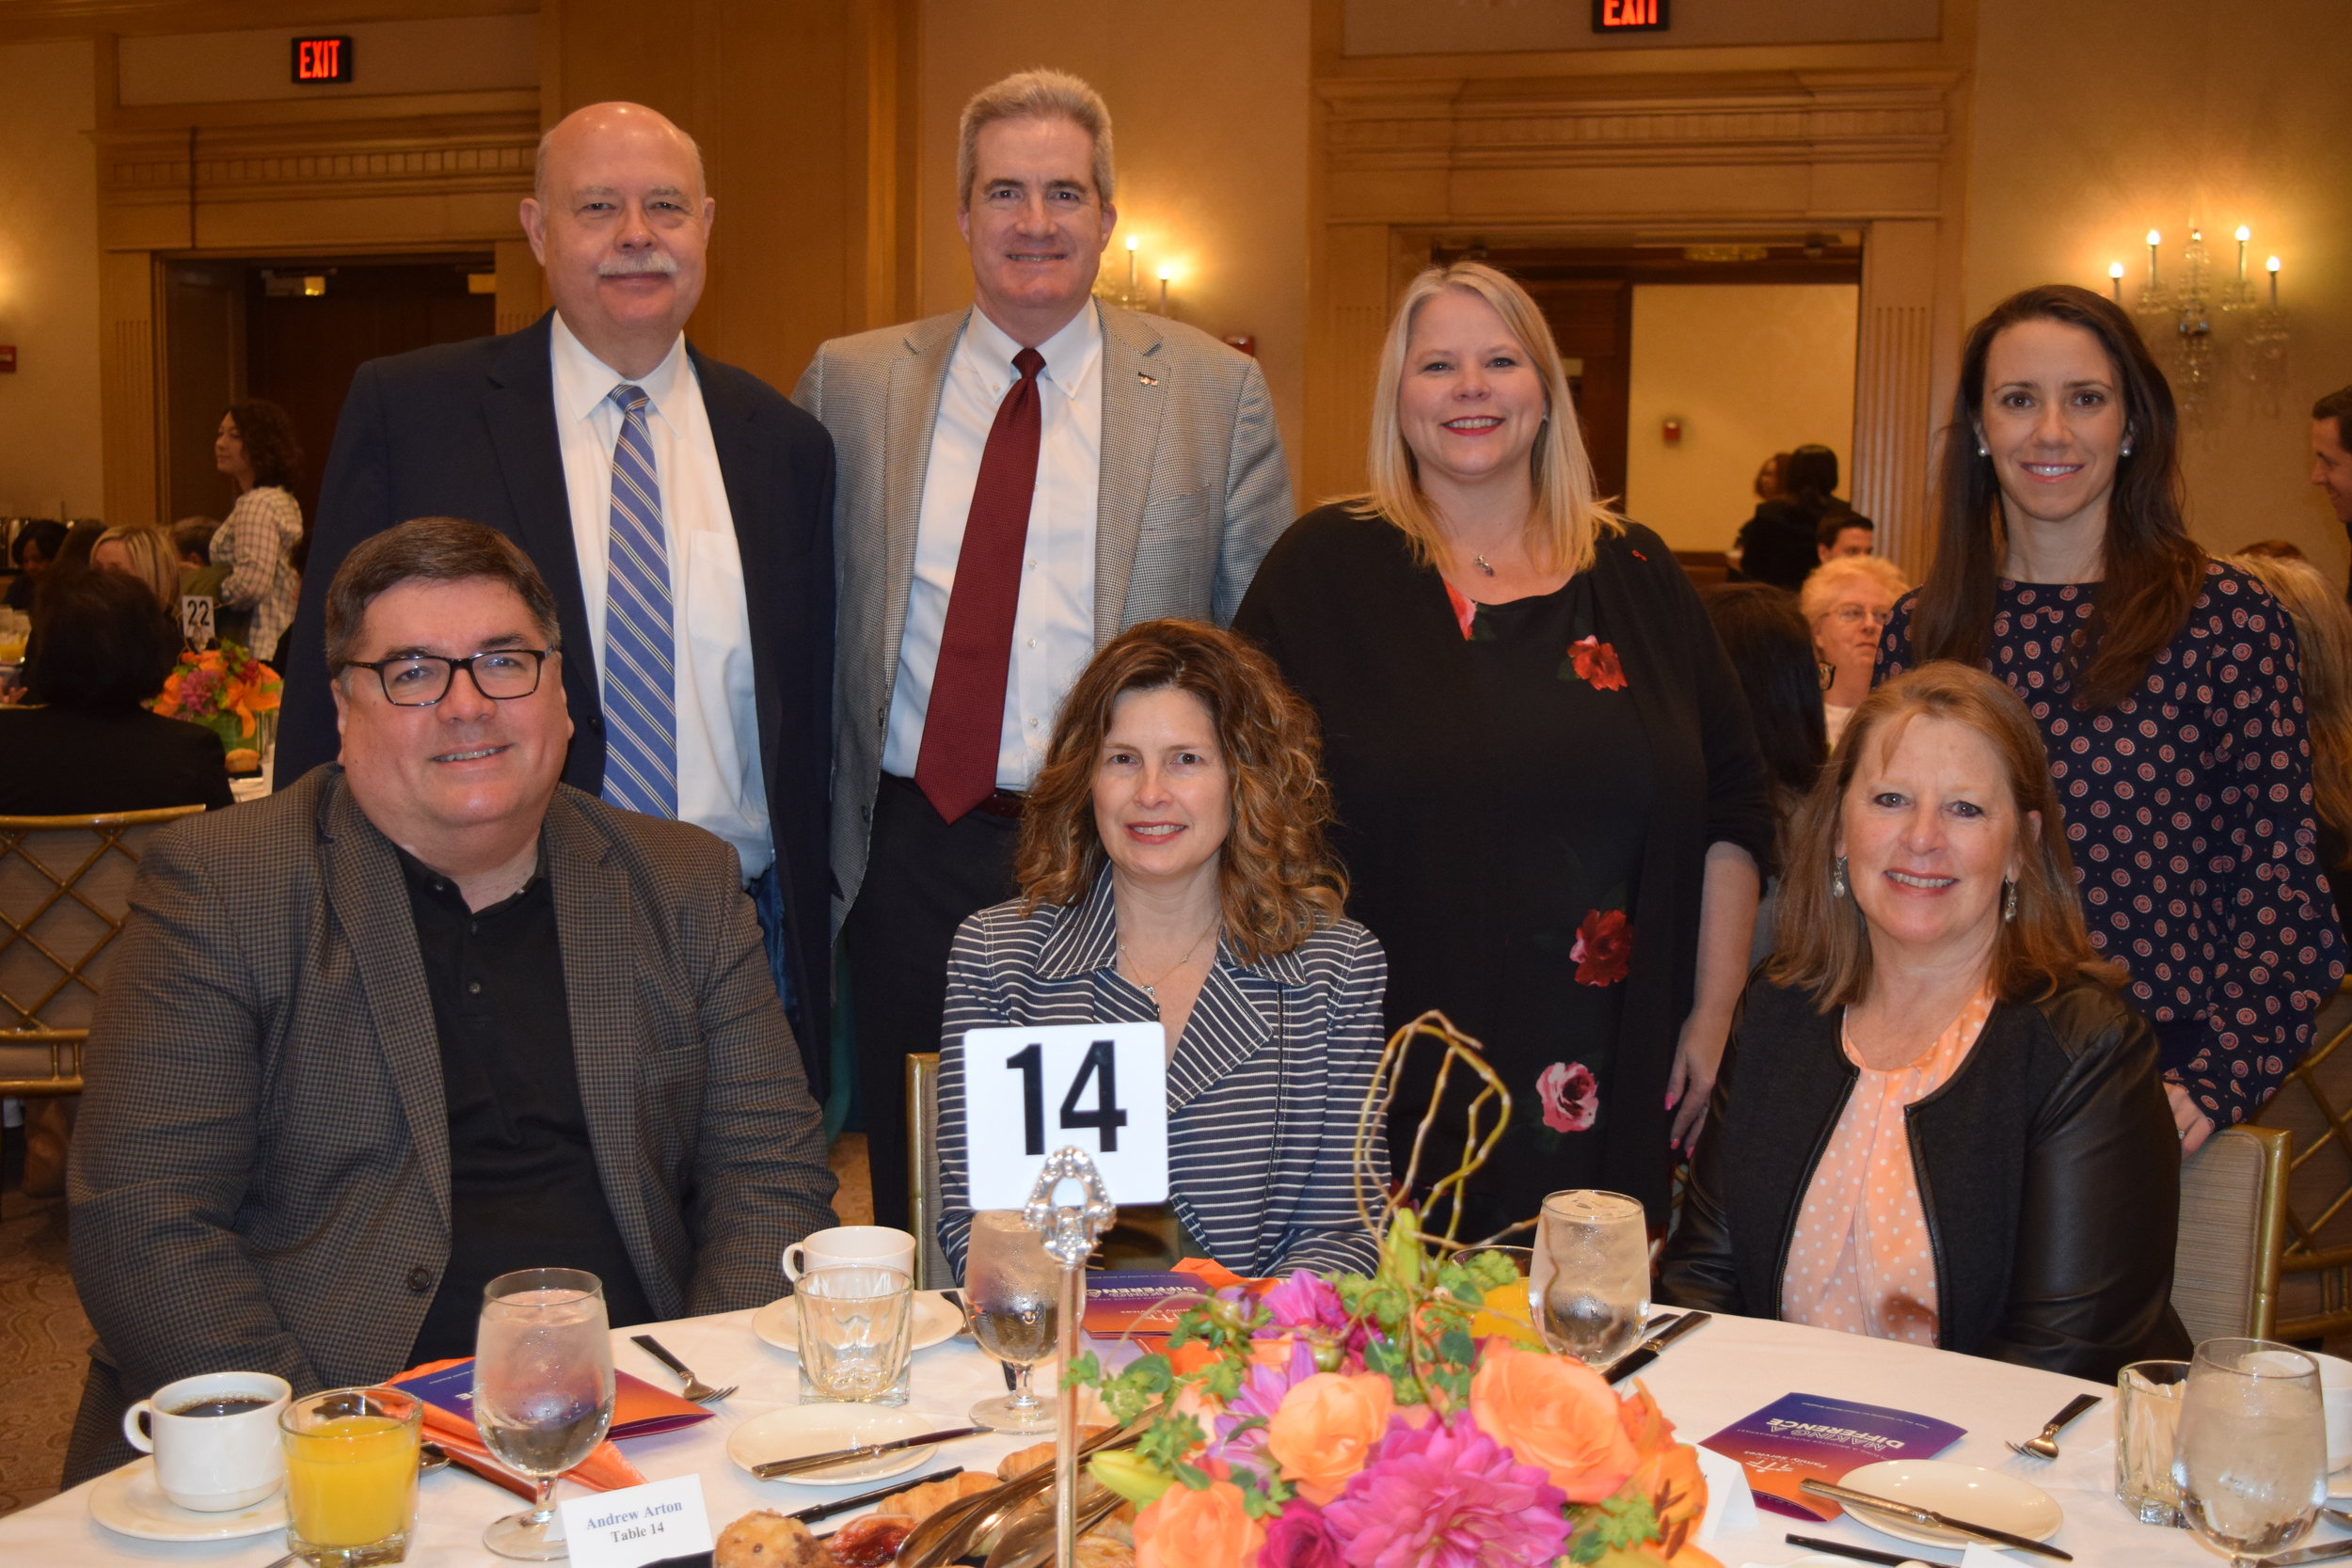 Representatives of breakfast sponsor KeyBank, including board member Ted Willett (top row second from left), attended the event.